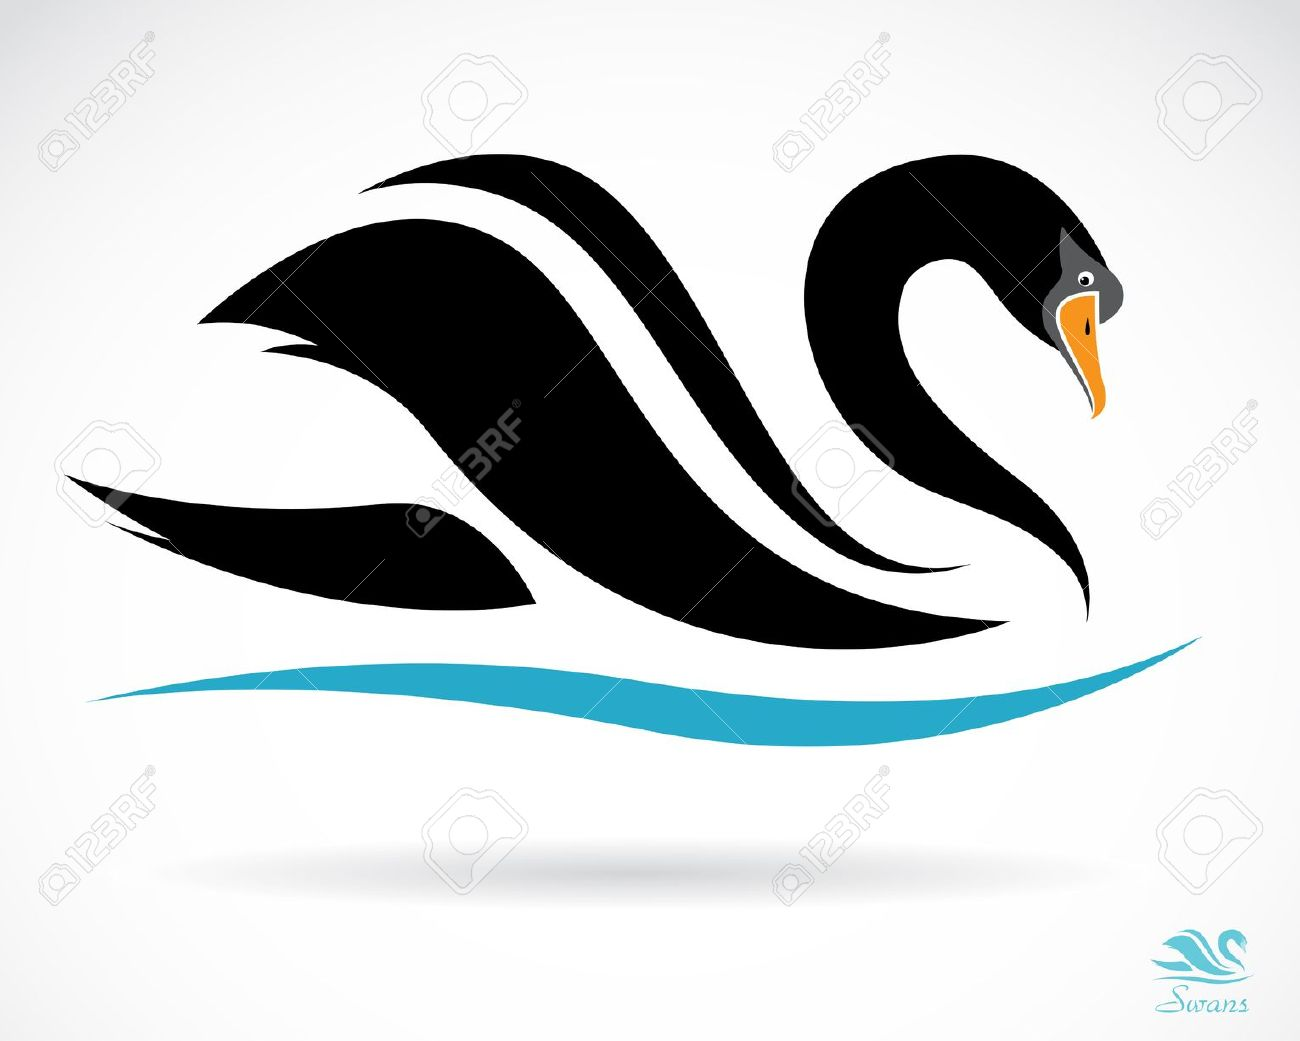 Black Swan clipart vector Black Vector Background A Background